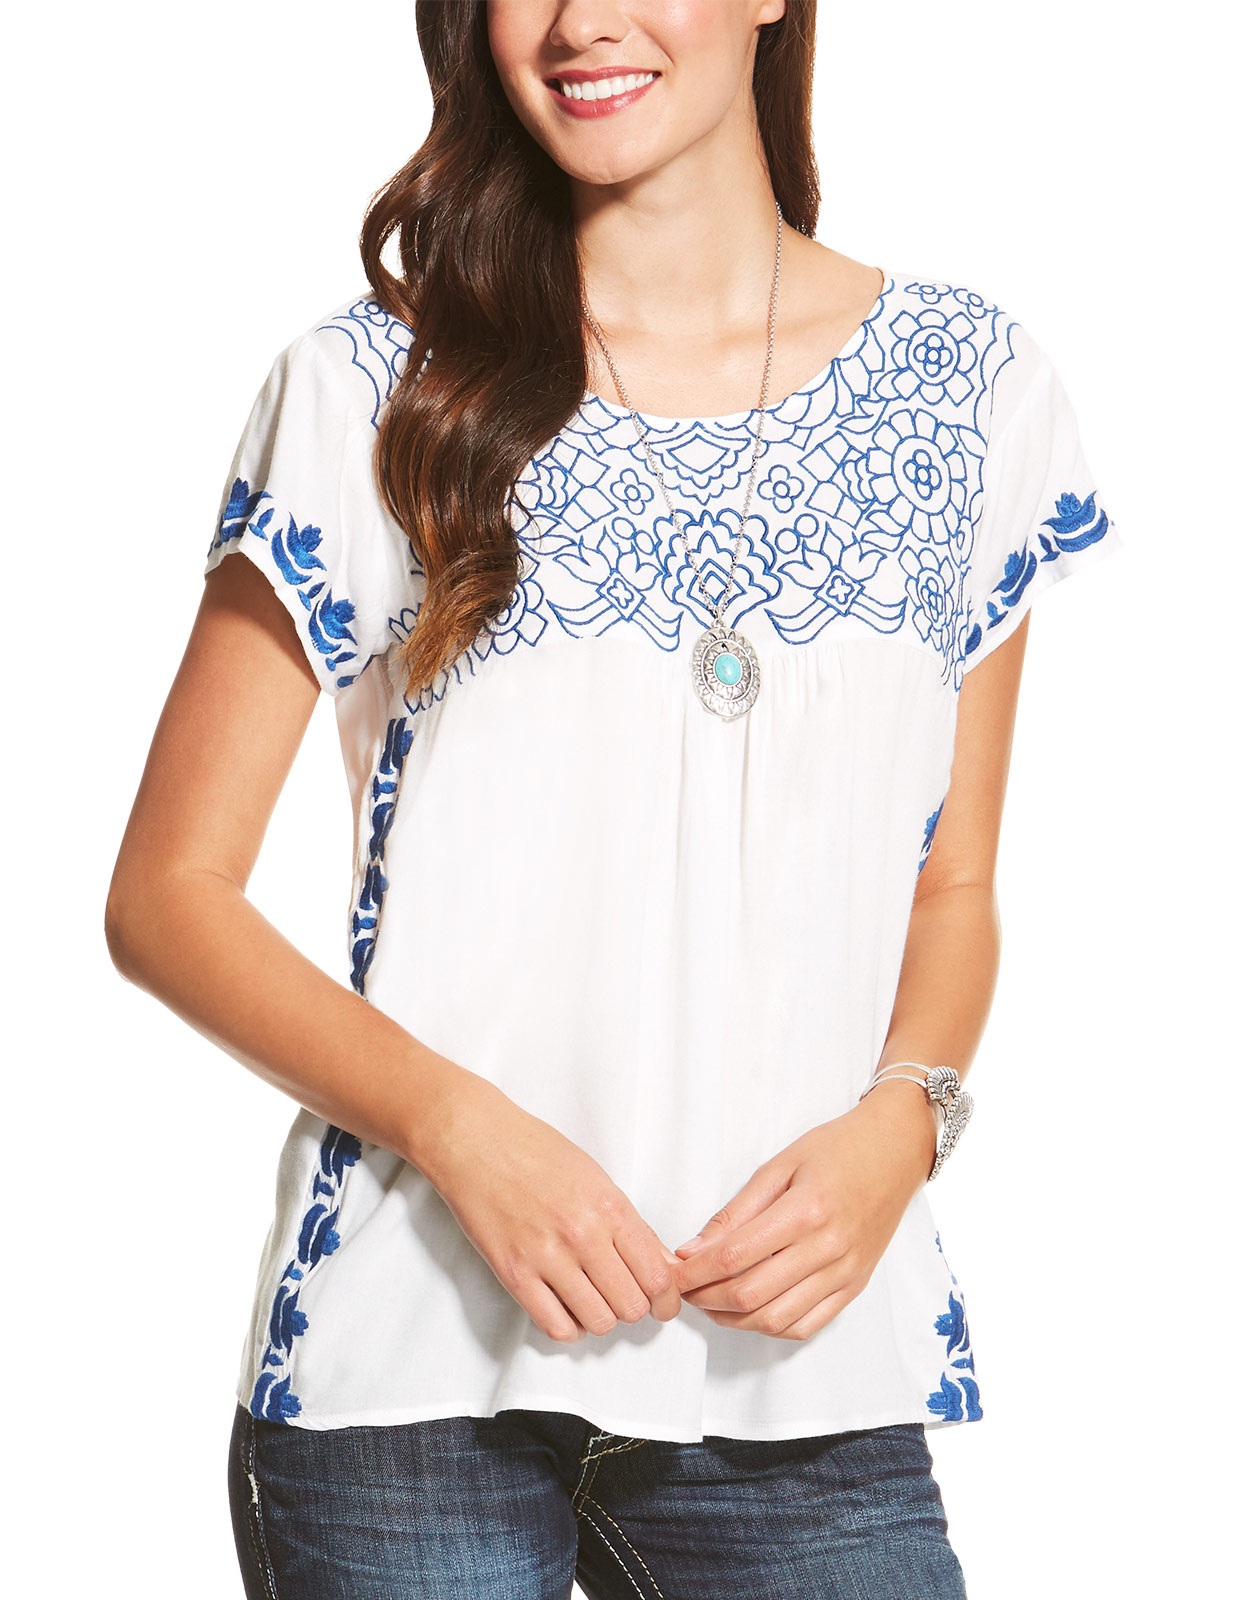 Ariat Women's Acle Short Sleeve Embroidered Top - White